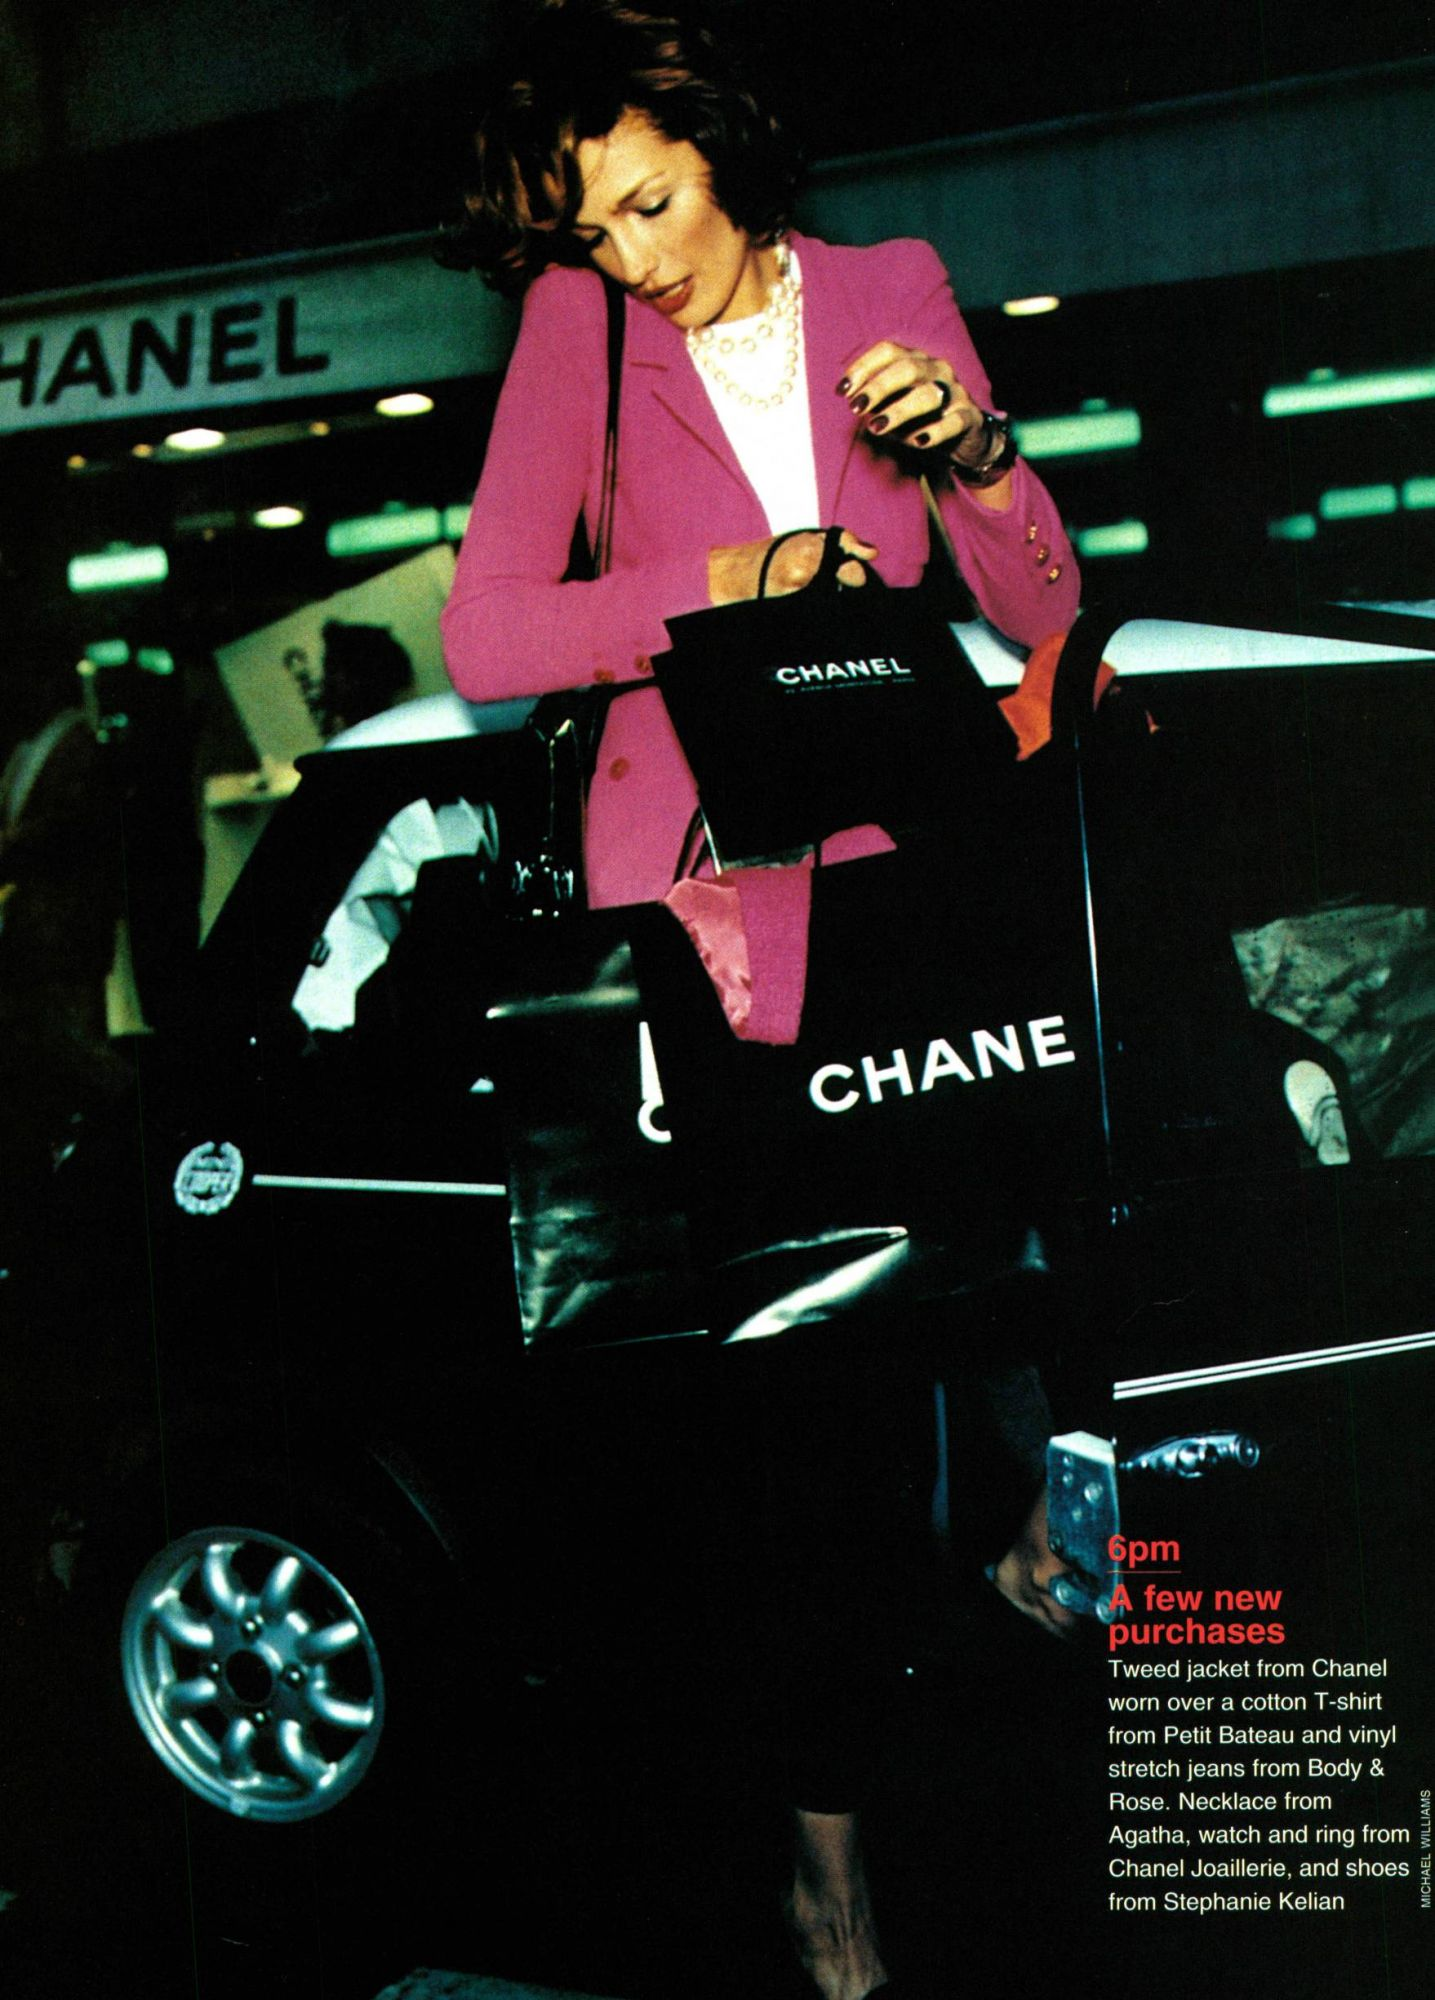 Hong Kong Tatler, November 1995